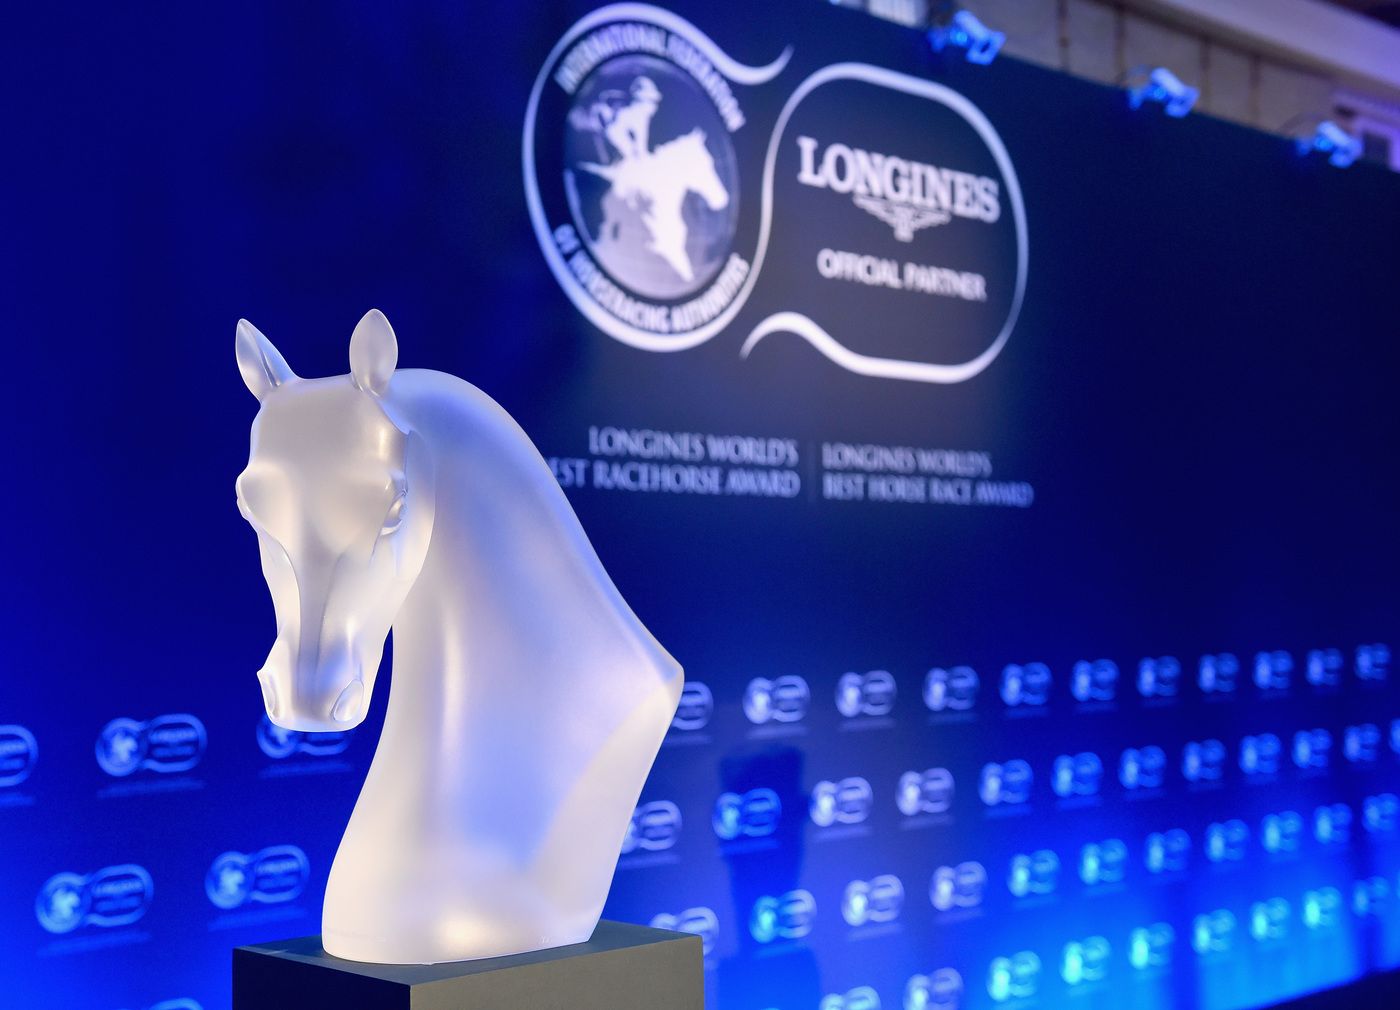 Longines Flat Racing Event: 2018 Longines World's Best Racehorse and Longines World's Best Horse Race Ceremony Set for London 1